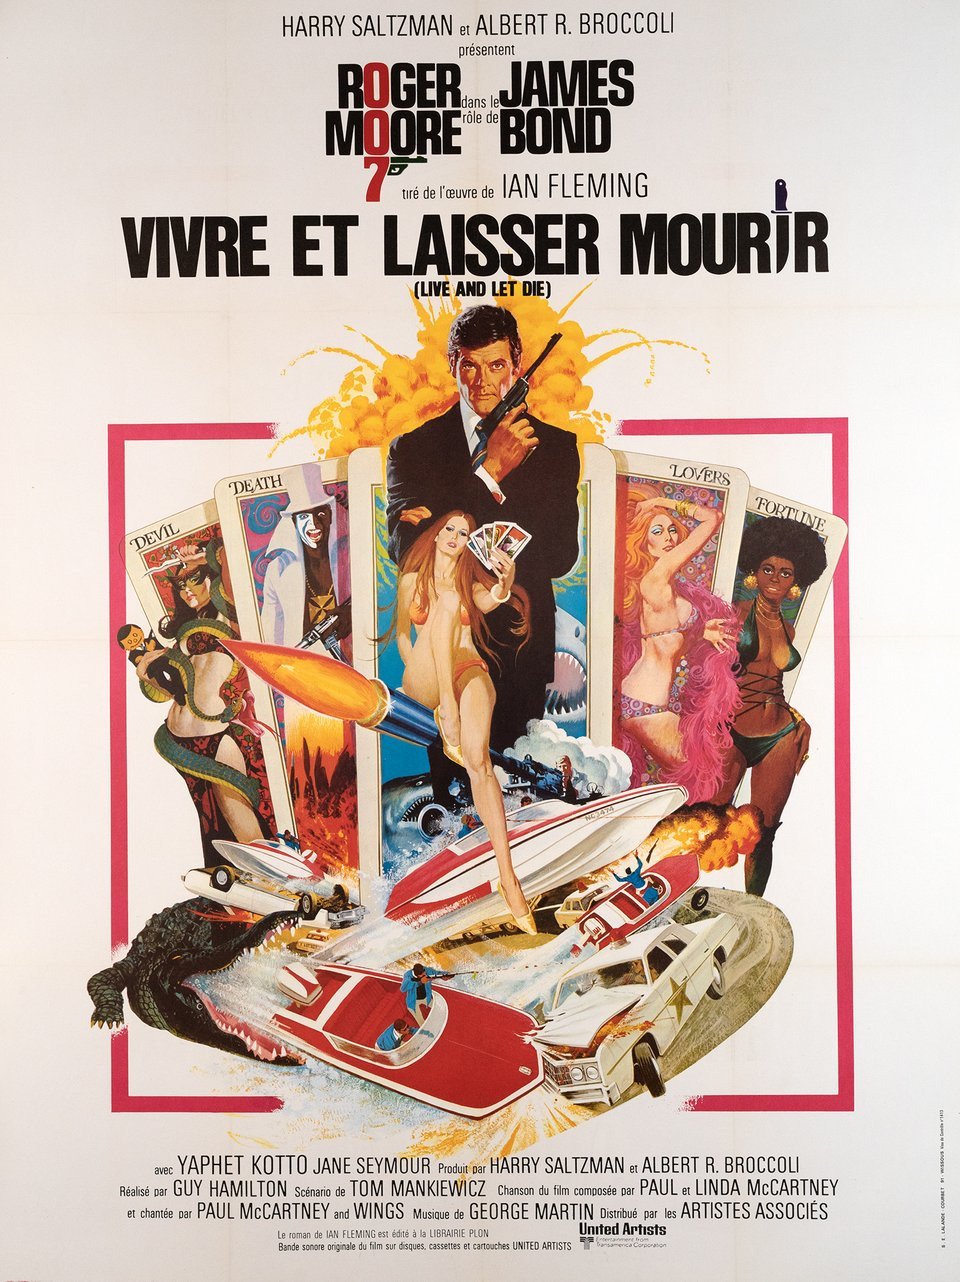 James Bond 007, Vivre et laisser mourir – Vintage poster – Robert MCGINNIS – 1978